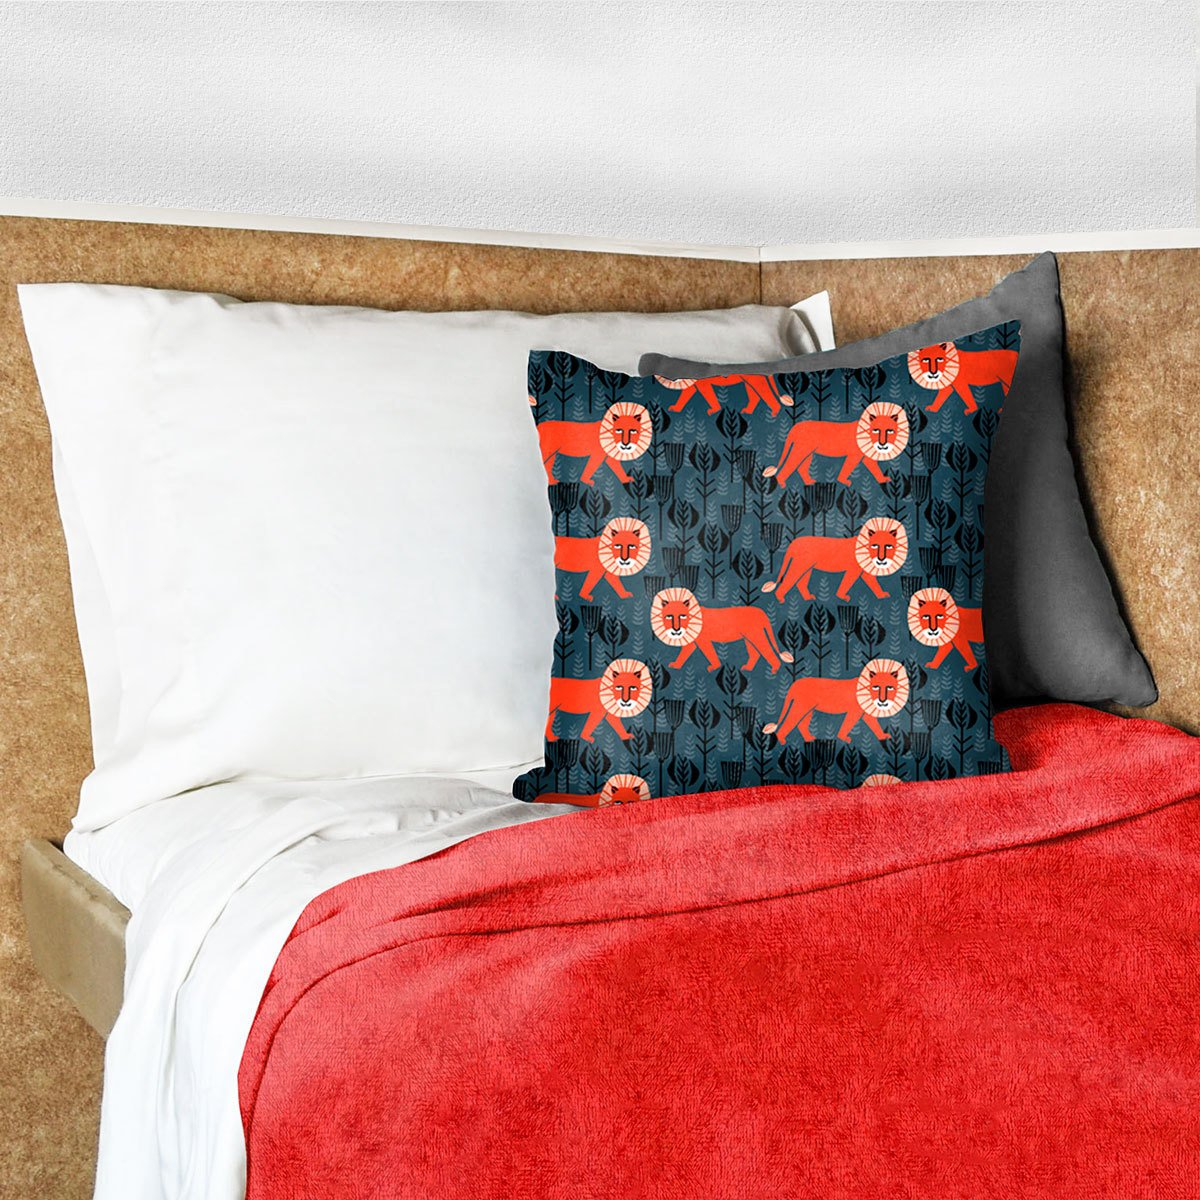 Cuddle Minkie Blankets for RVs and Campers 34x75 Navy Allyson Brooke Inc.